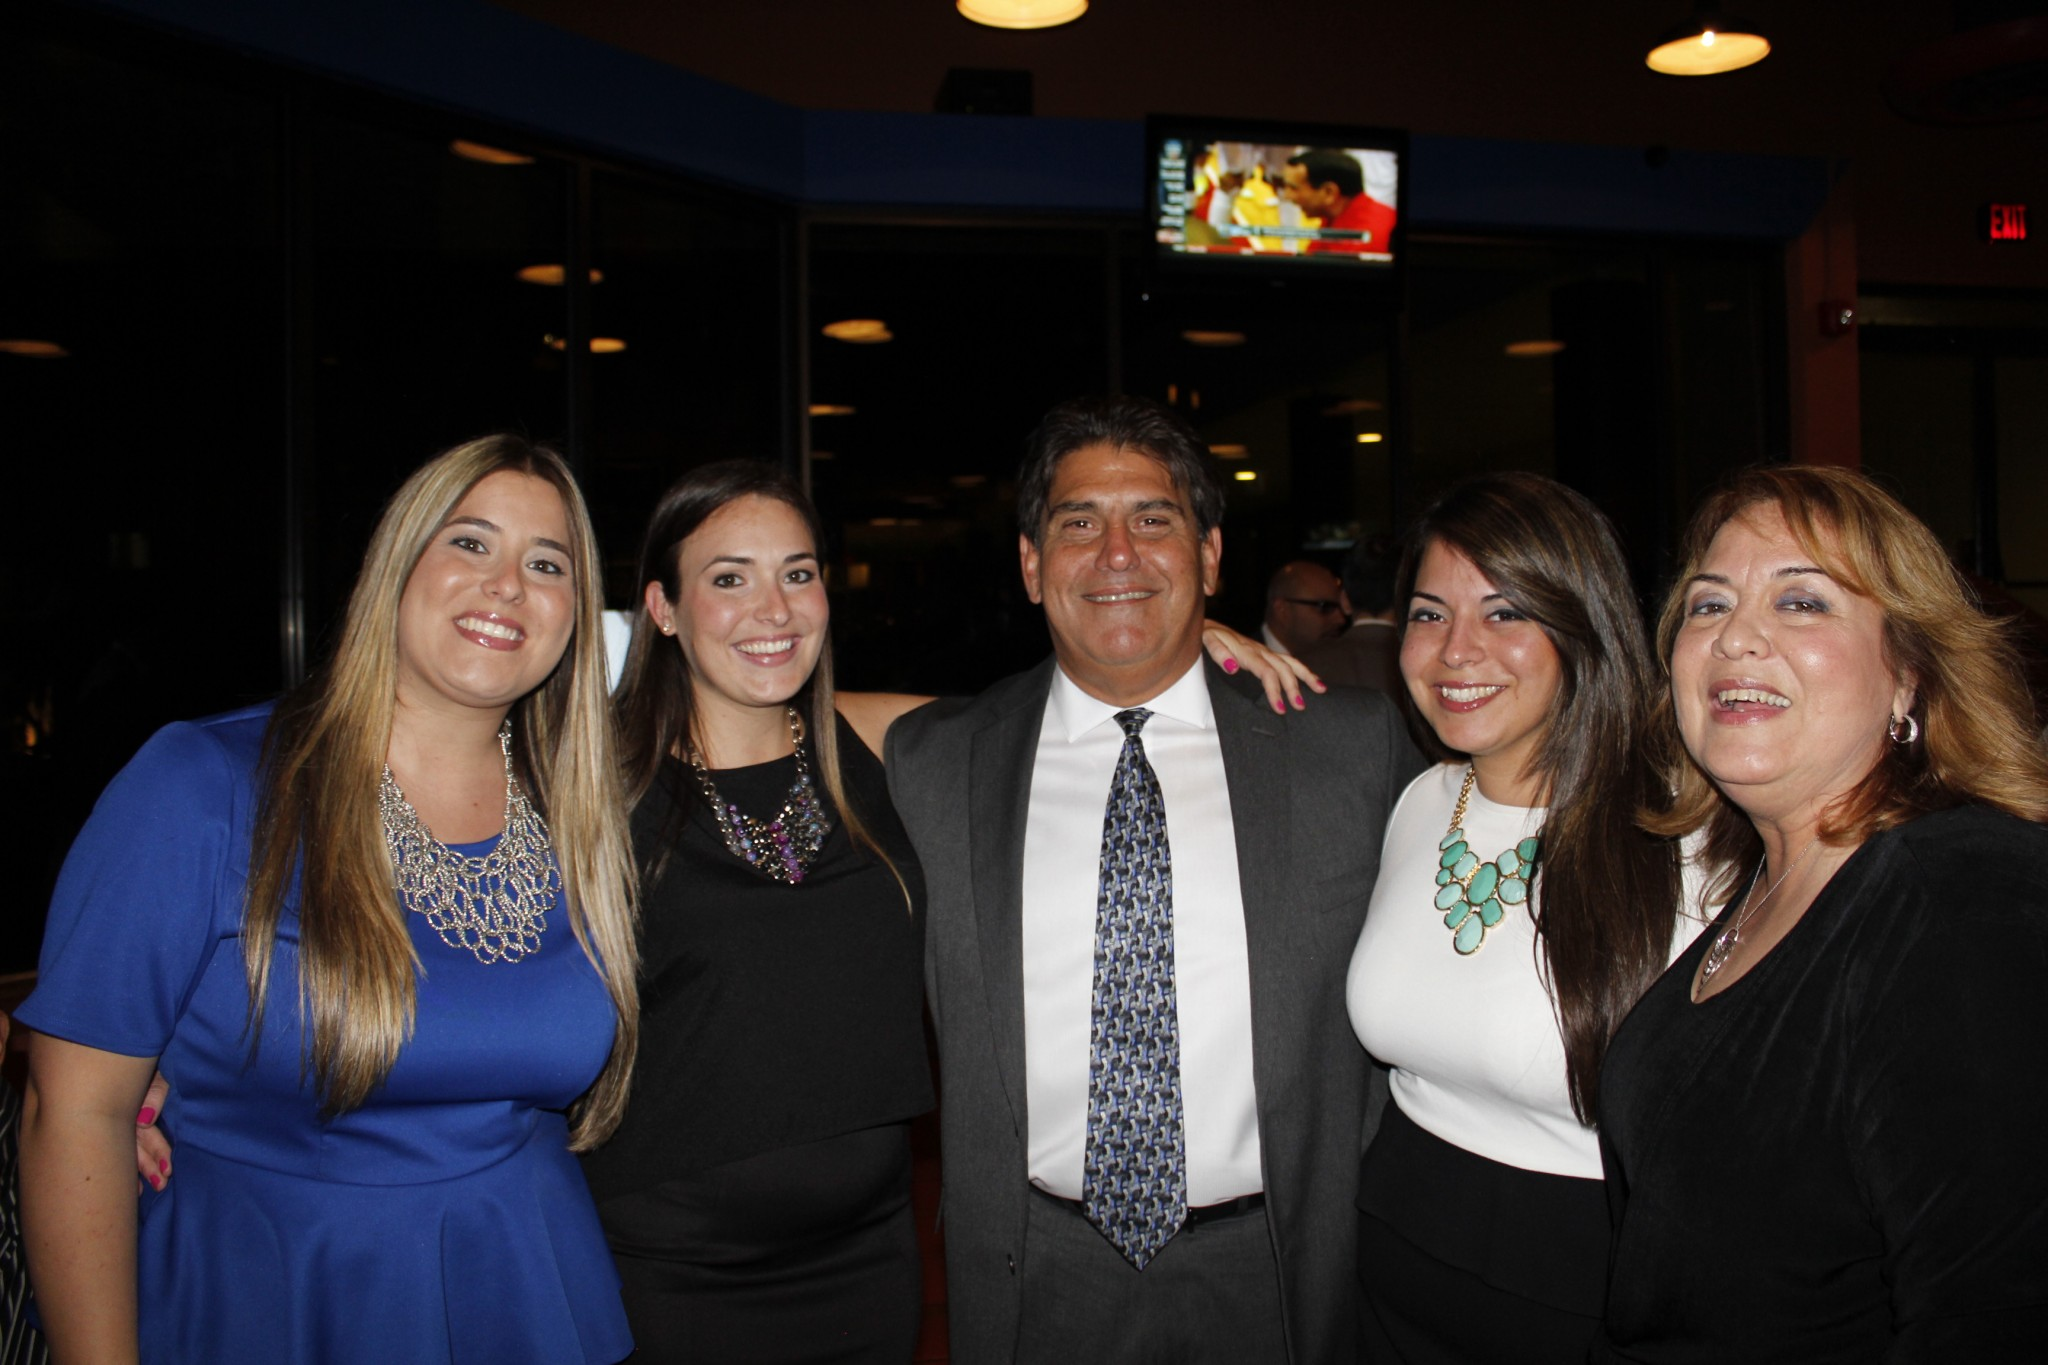 The Lopez family of Barlop Business in Miami, FL. Jose, Madelyn, Monica, Mallory and Michelle.